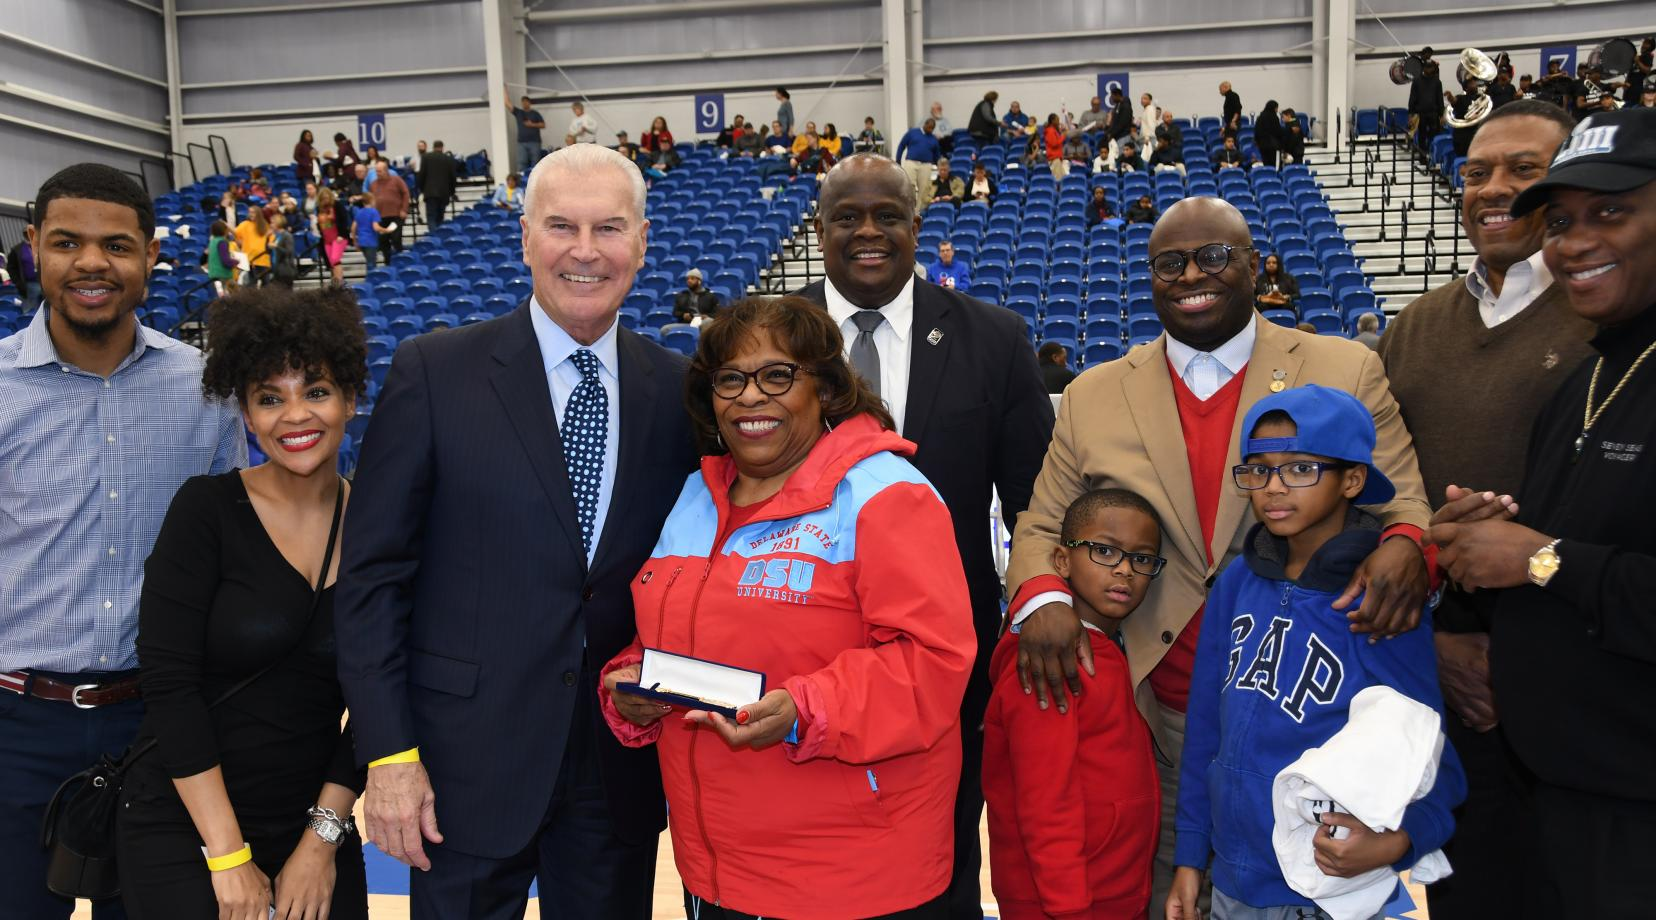 Dr. Wilma Mishoe stands next to Wilmington Mayor Michael Purzycki as she is honored  by the city as part of their annual Black History Month celebration at the 76er Fieldhouse as part of the Long Island Nets vs. Delaware Blue Coats basketball game. Standing around them are city officials and DSU community members.